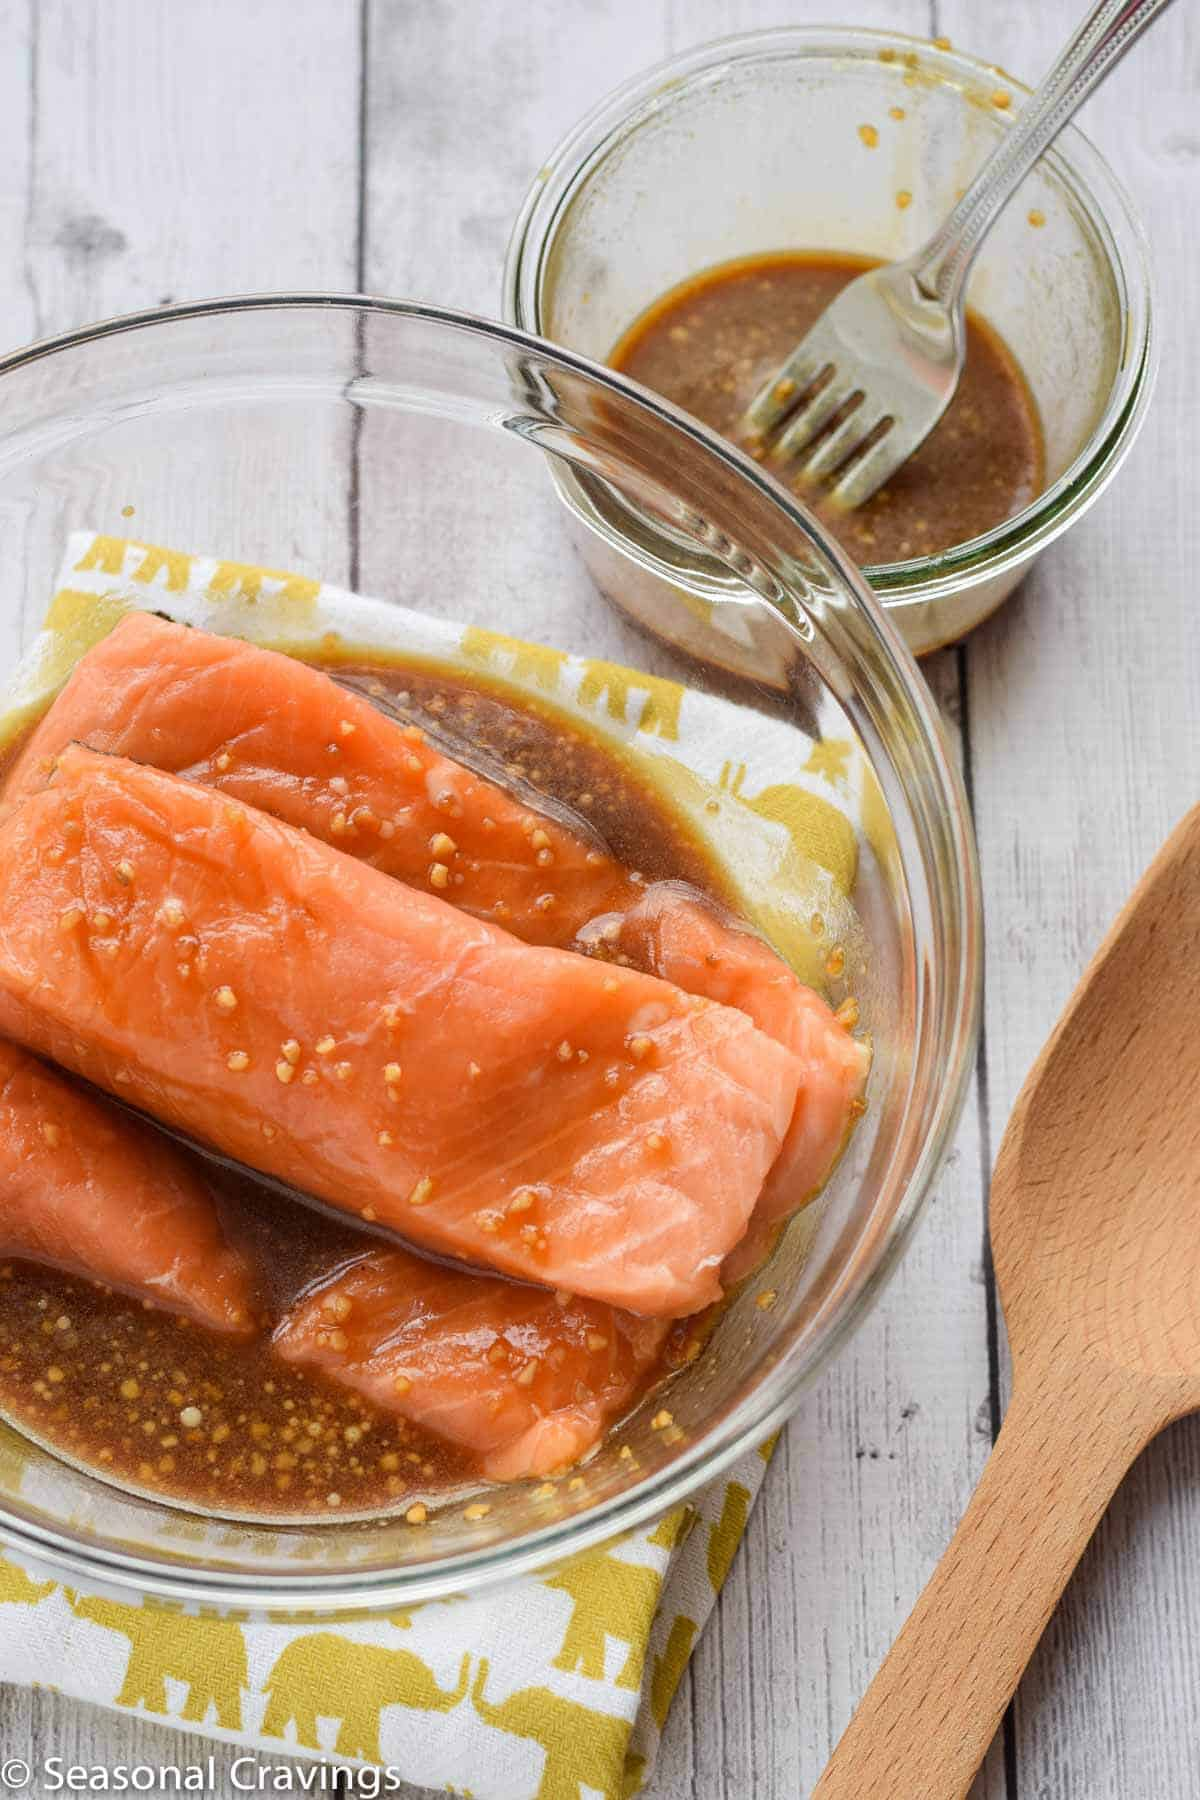 baked teriyaki salmon recipe and marinade in bowl on the side